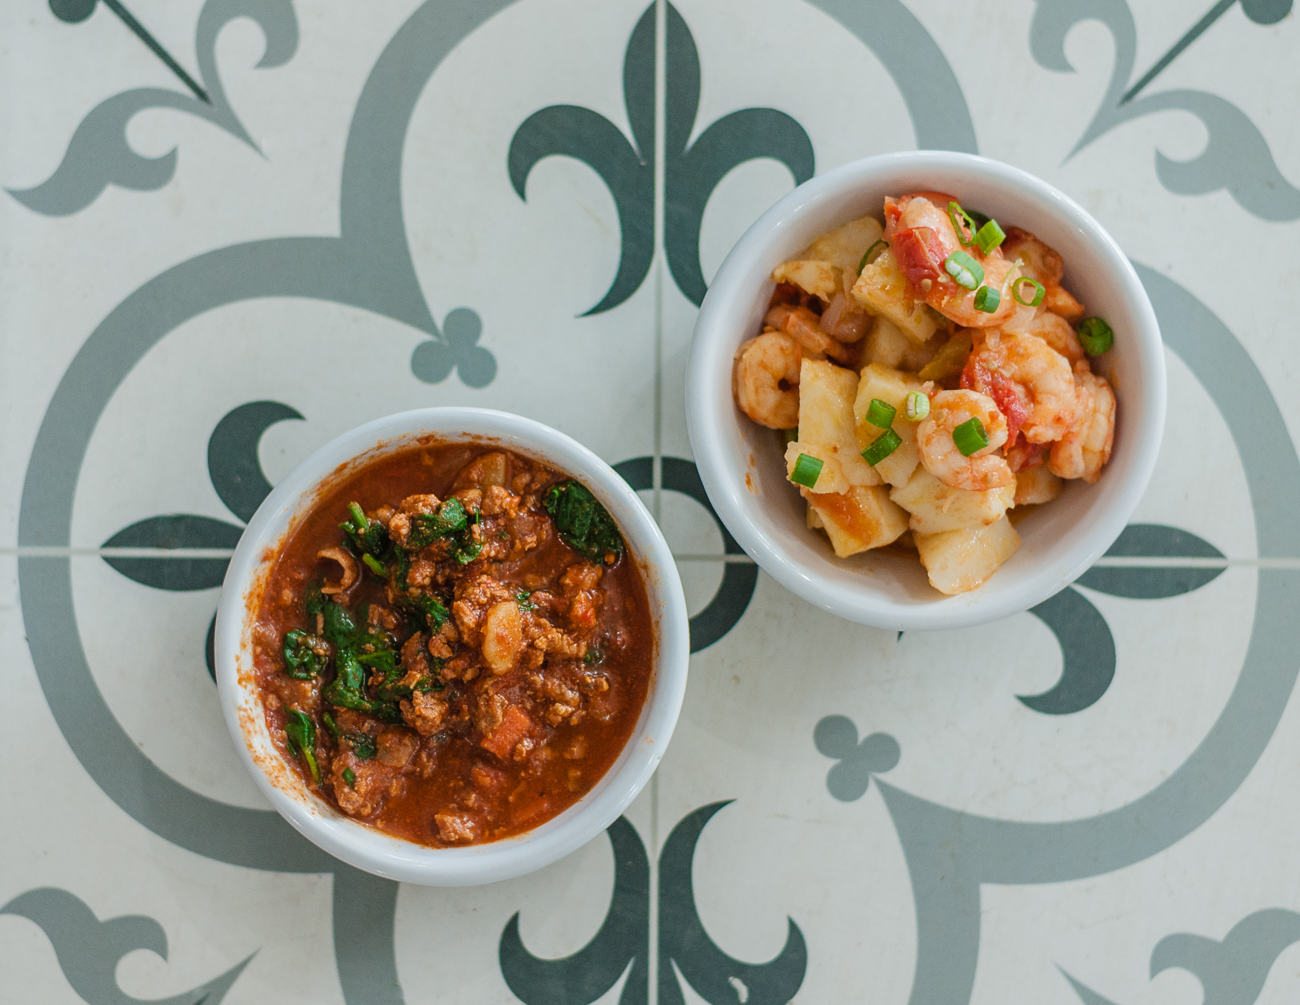 Chicken & chorizo chili and a baked potato & shrimp dish{&nbsp;}/ Image: Kellie Coleman // Published: 1.7.21<p></p>